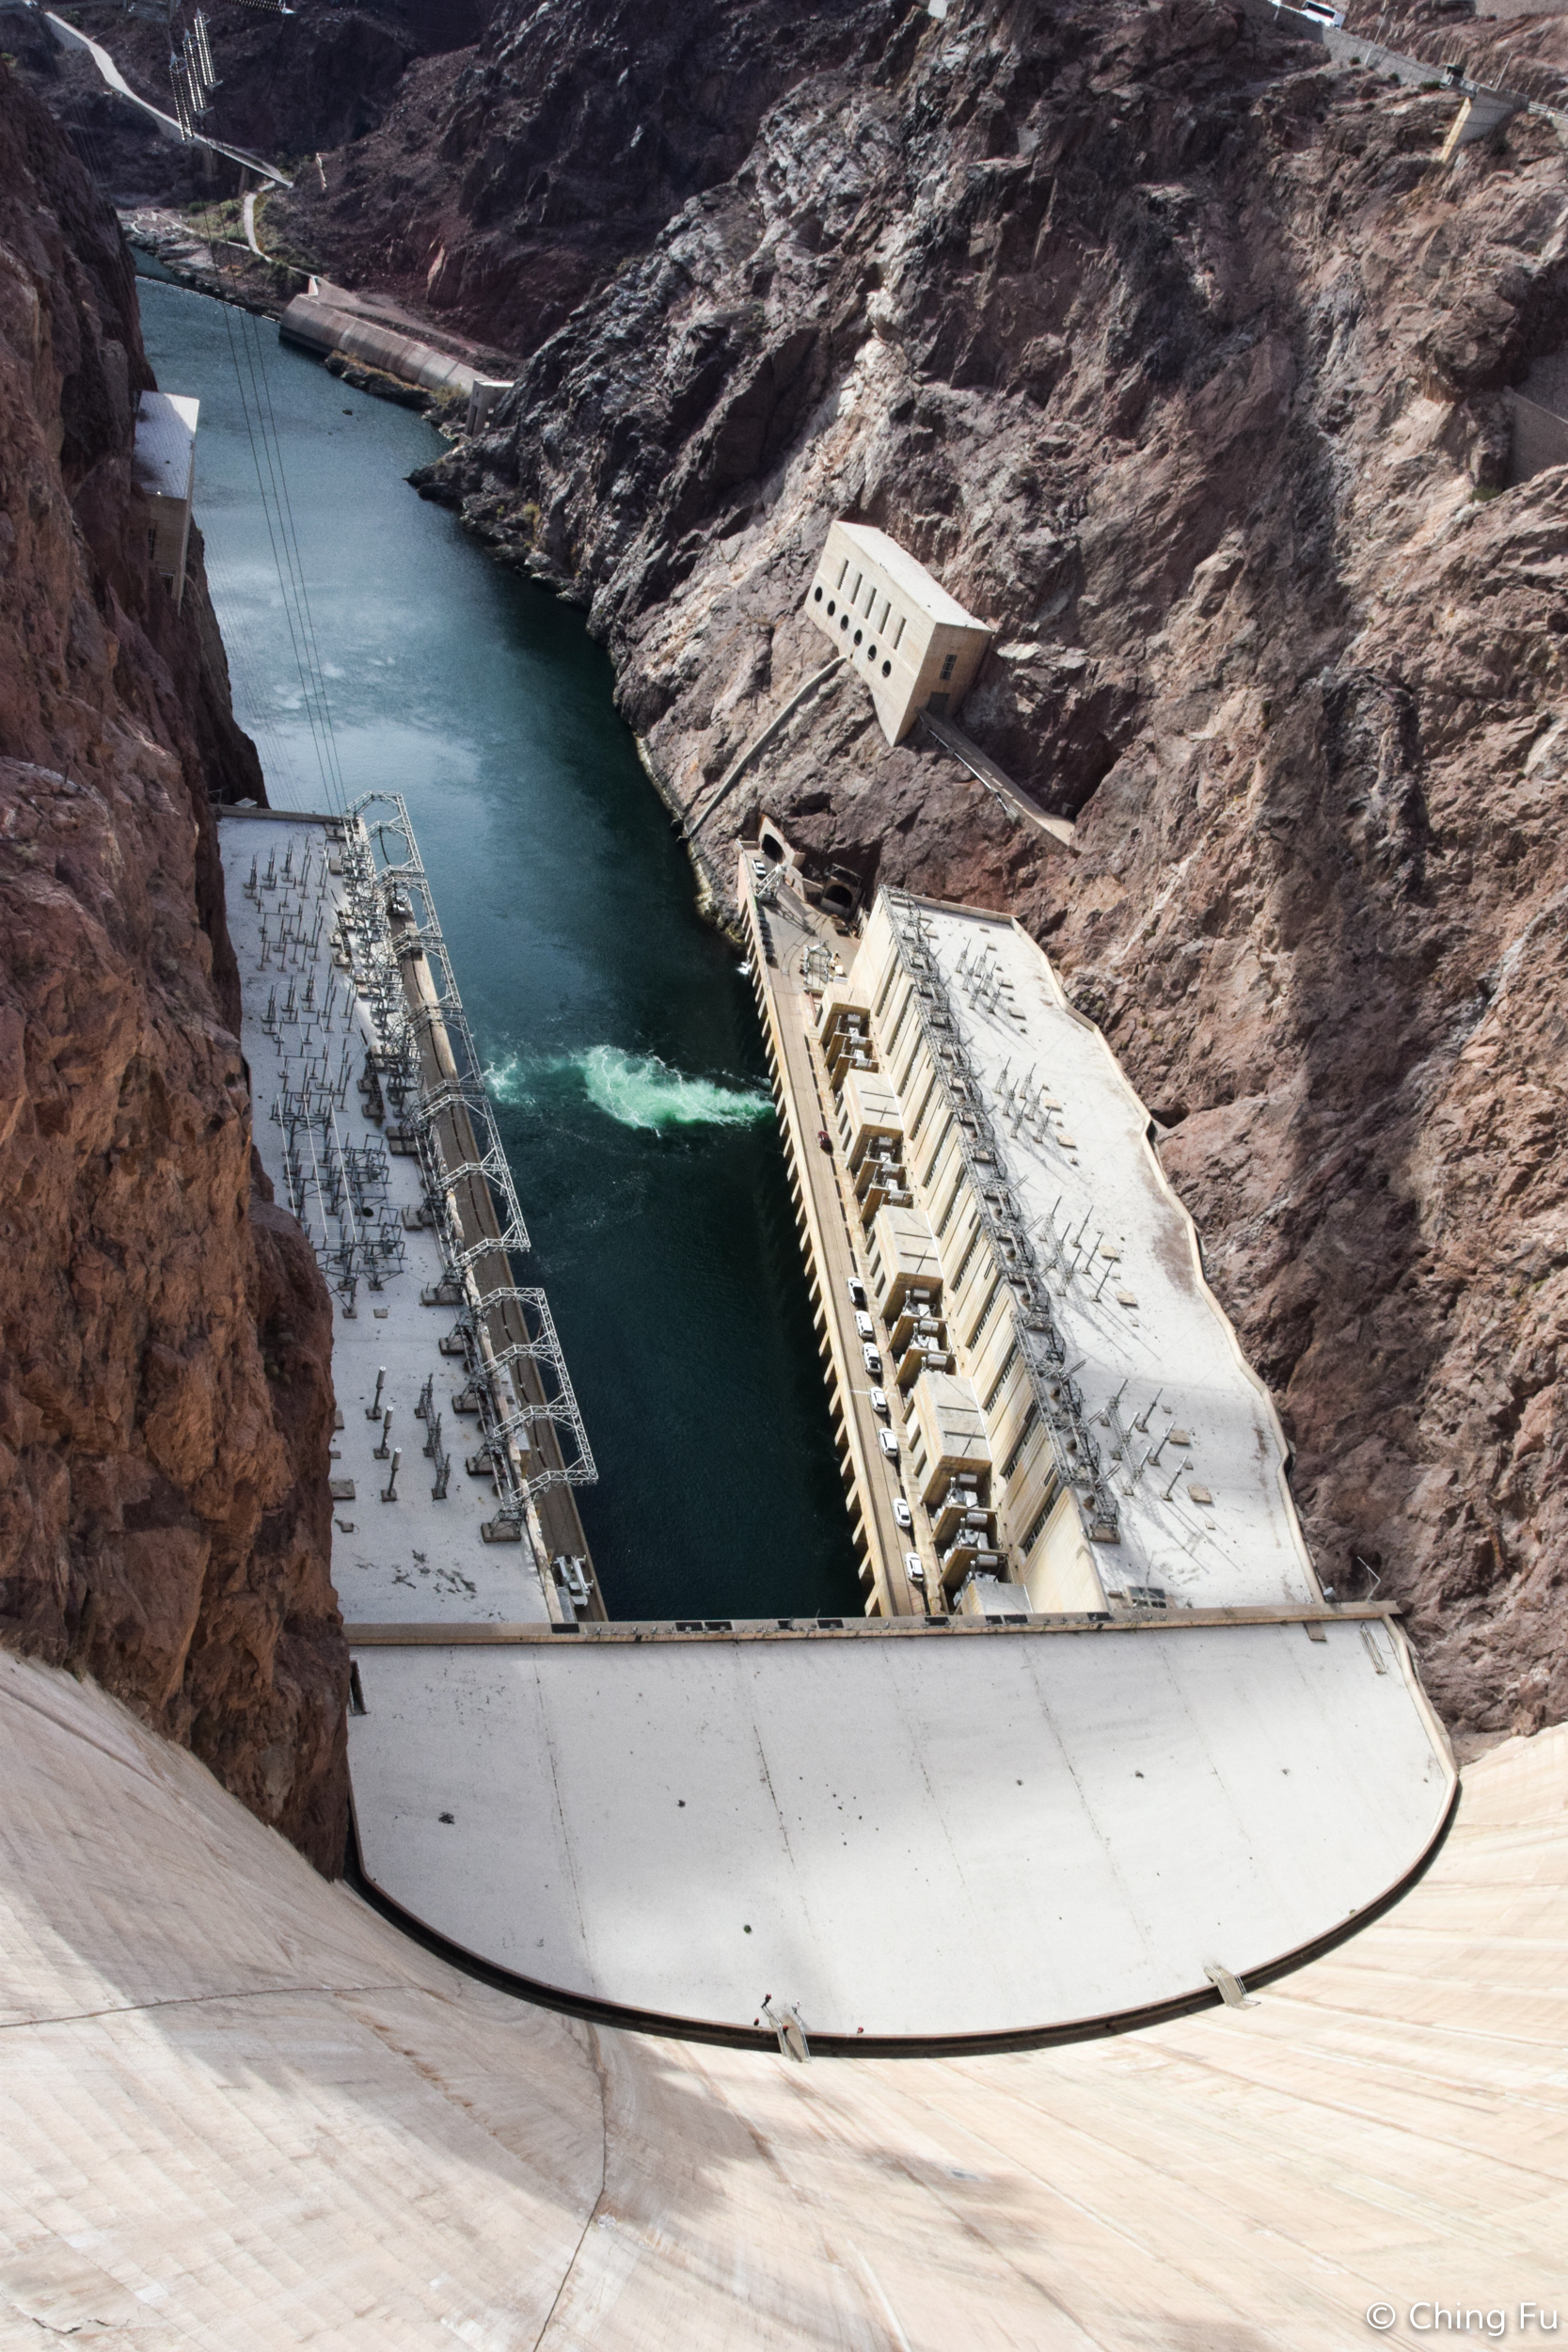 View of the Colorado River while standing at the top of the dam.